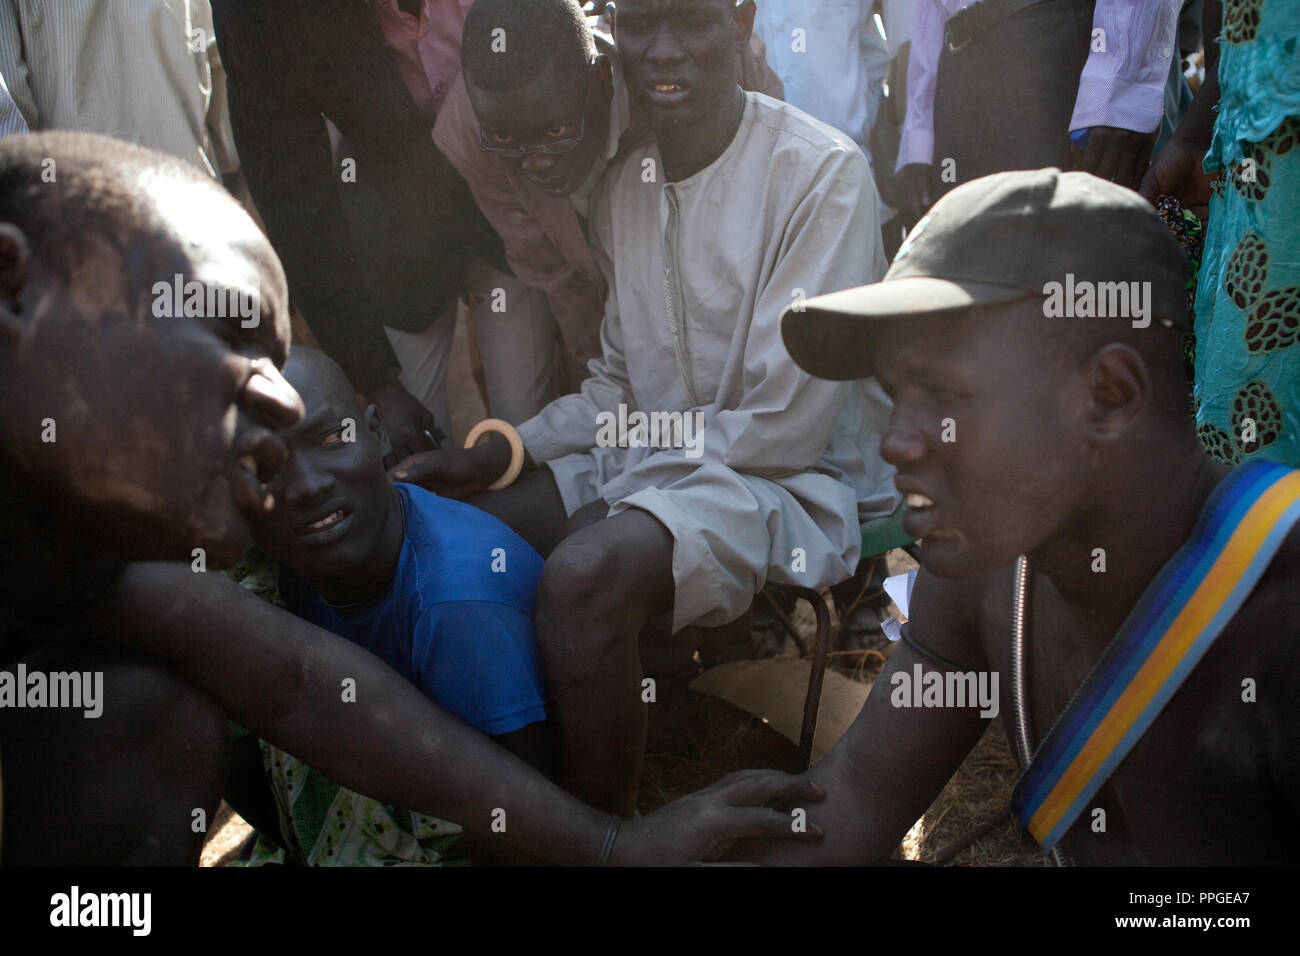 18 december 2010 - Juba, Southern Sudan - Members of the Dinka tribe from Bor, Jonglei State talk before the final of South Sudan's first commercial wrestling league between their tribe and the Mundari wrestlers from Central Equatoria State at Juba Stadium. The matches attracted large numbers of spectators who sang, played drums and danced in support of their favorite wrestlers. The match organizers hoped that the traditional sport would bring together South Sudan's many different tribes. Photo credit: Benedicte Desrus - Stock Image